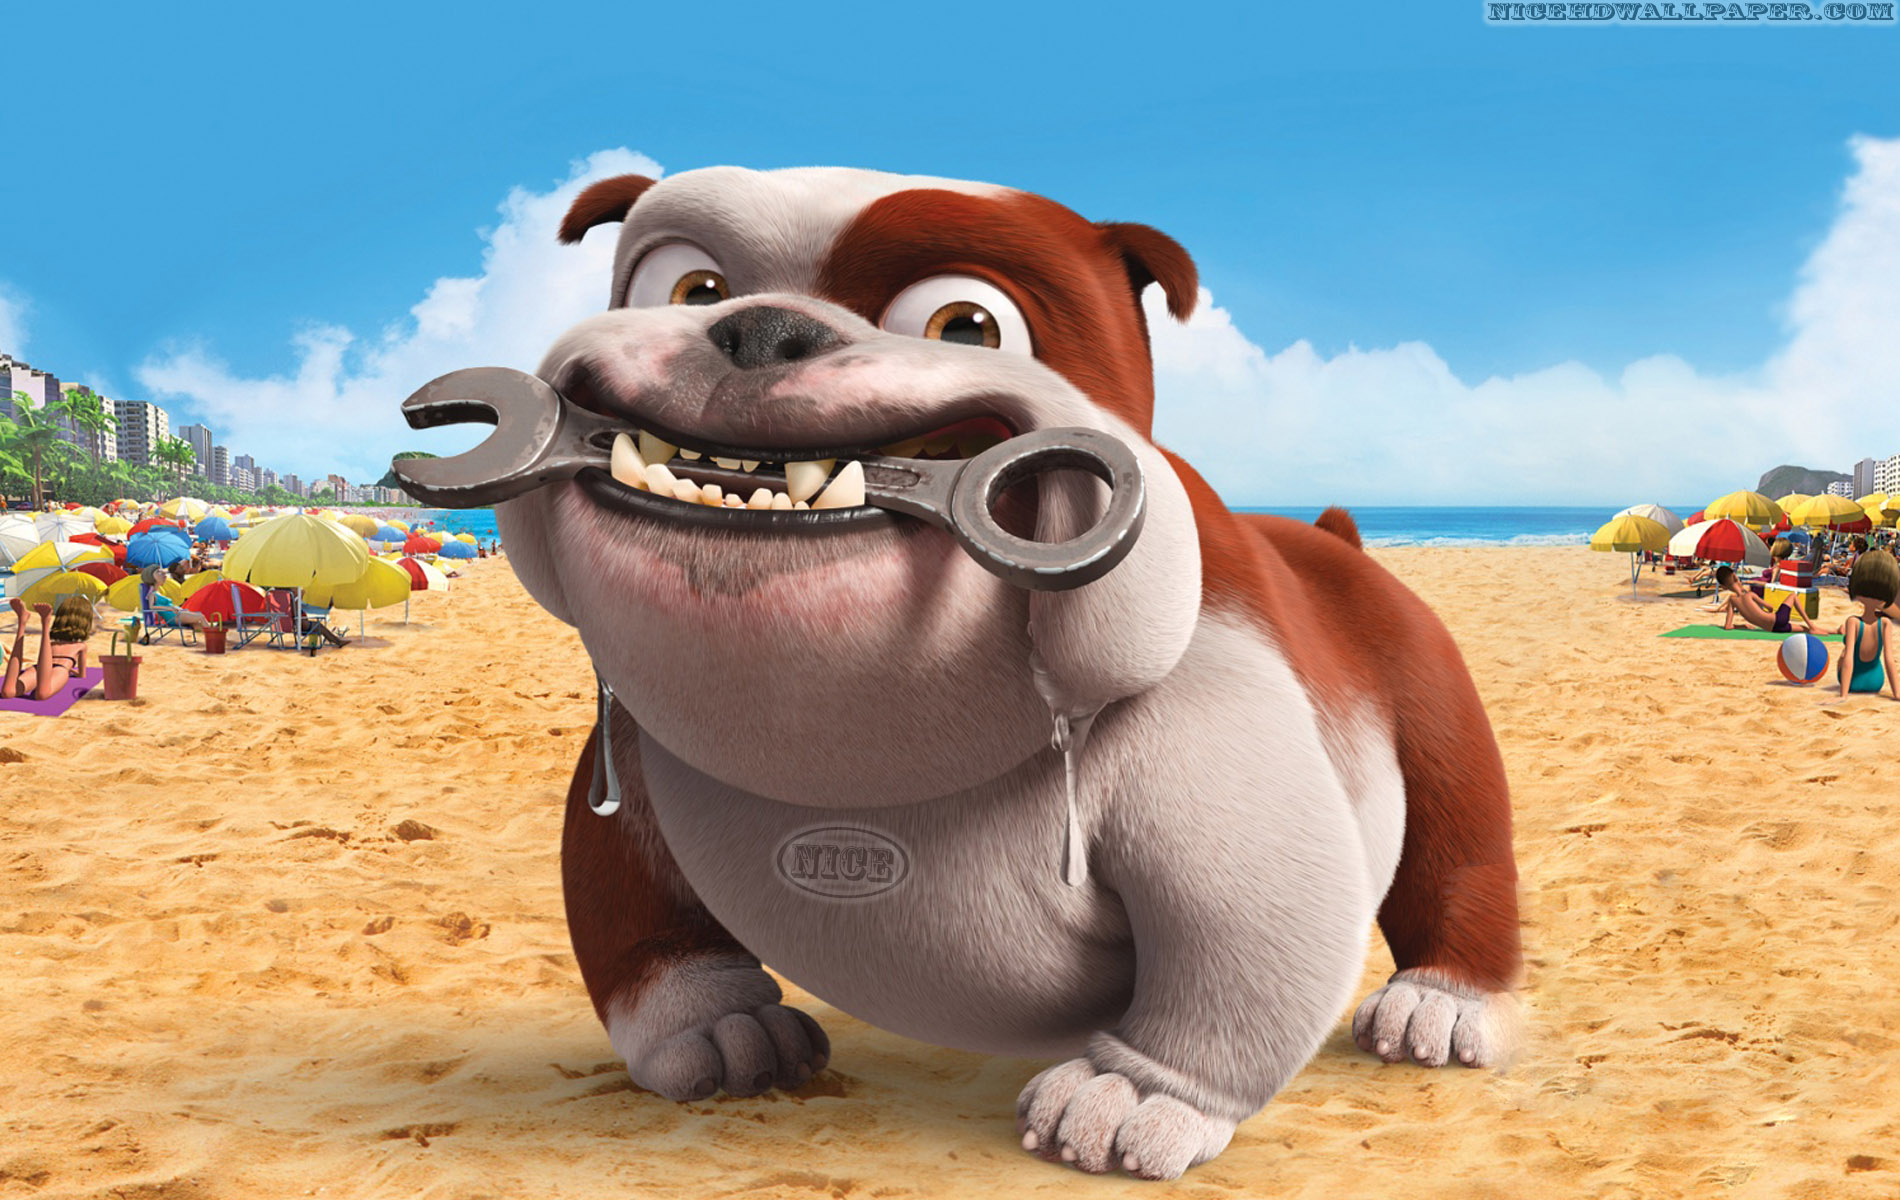 Free Full Cartoon Movies funny cartoon movies 14 free hd wallpaper - funnypicture